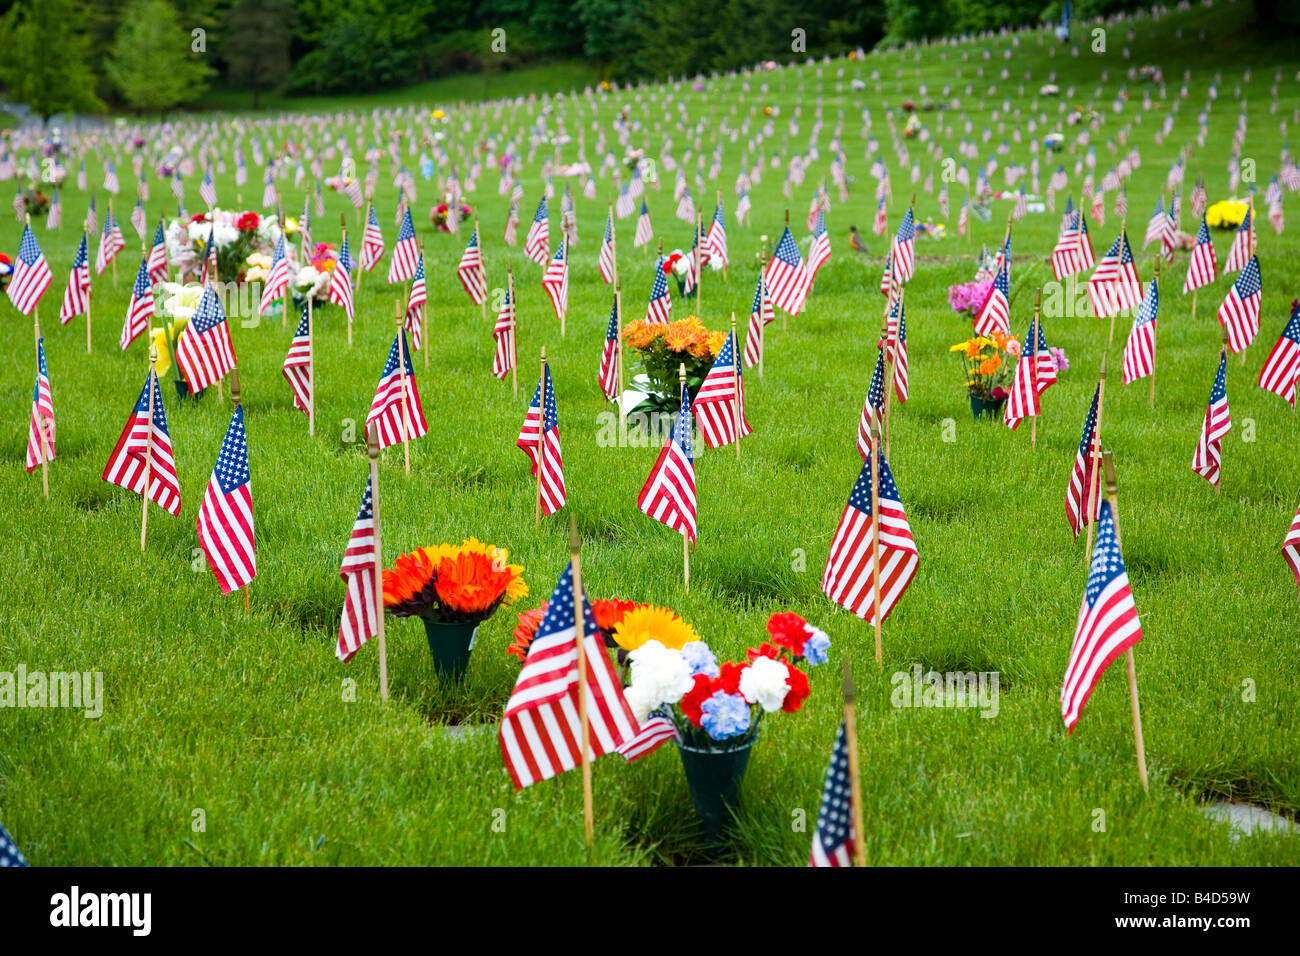 Memorial Flowers And Flags In A Graveyard In Oregon, USA - Stock Image